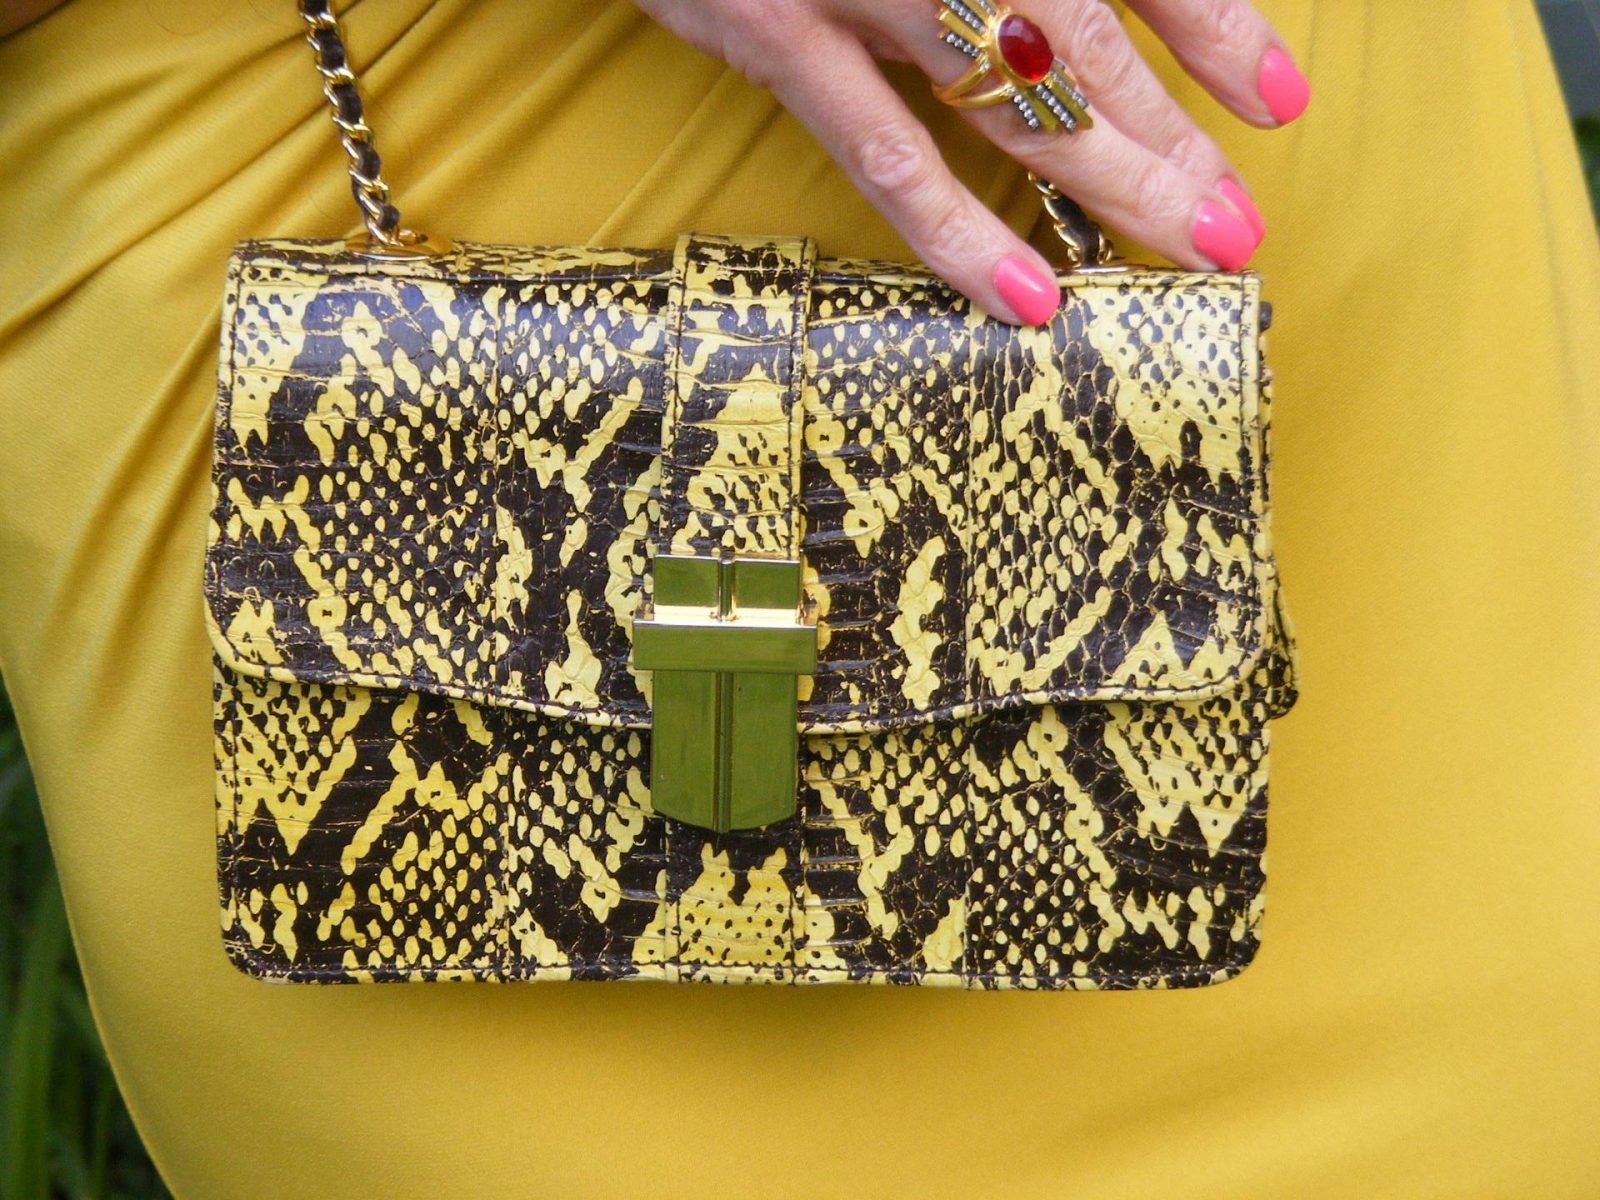 Angel Jackson snakeskin bag J Jasper Conran mustard dress